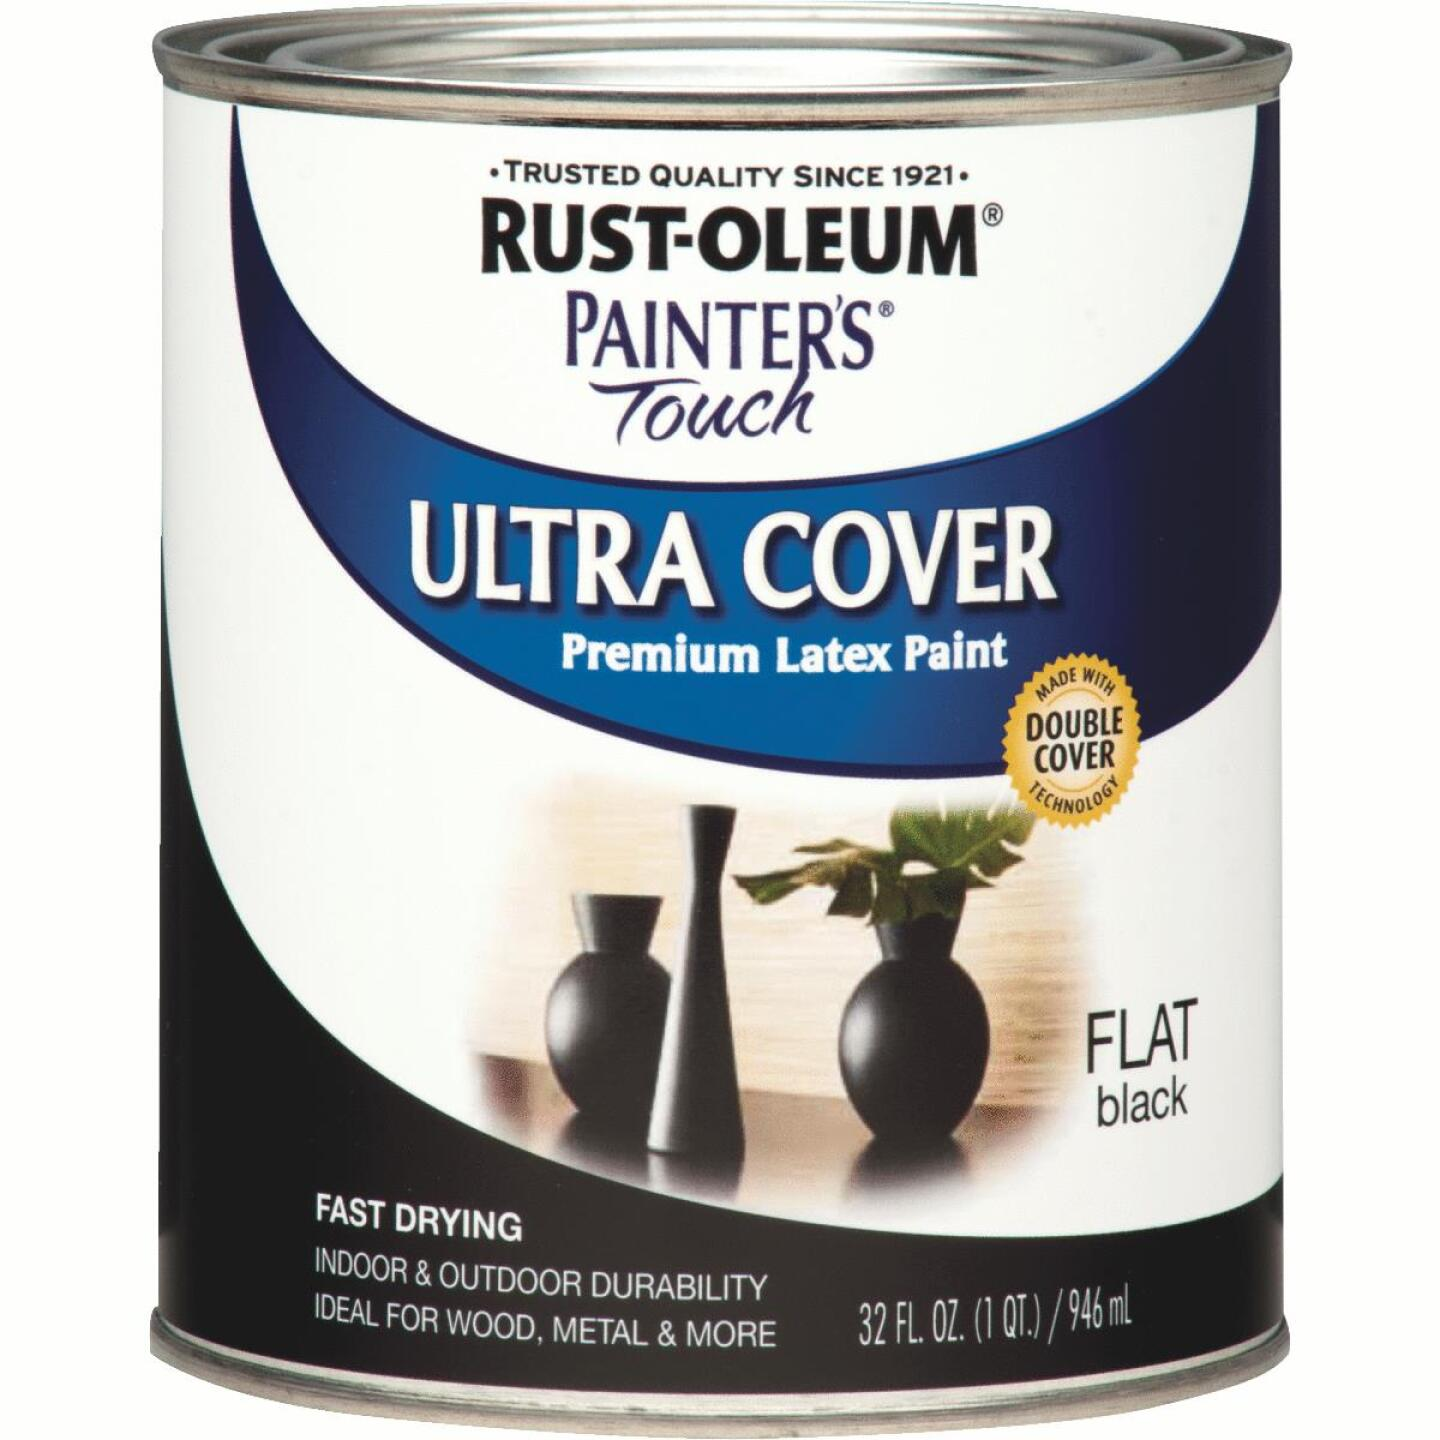 Rust-Oleum Painter's Touch 2X Ultra Cover Premium Latex Paint, Flat Black, 1 Qt. Image 1